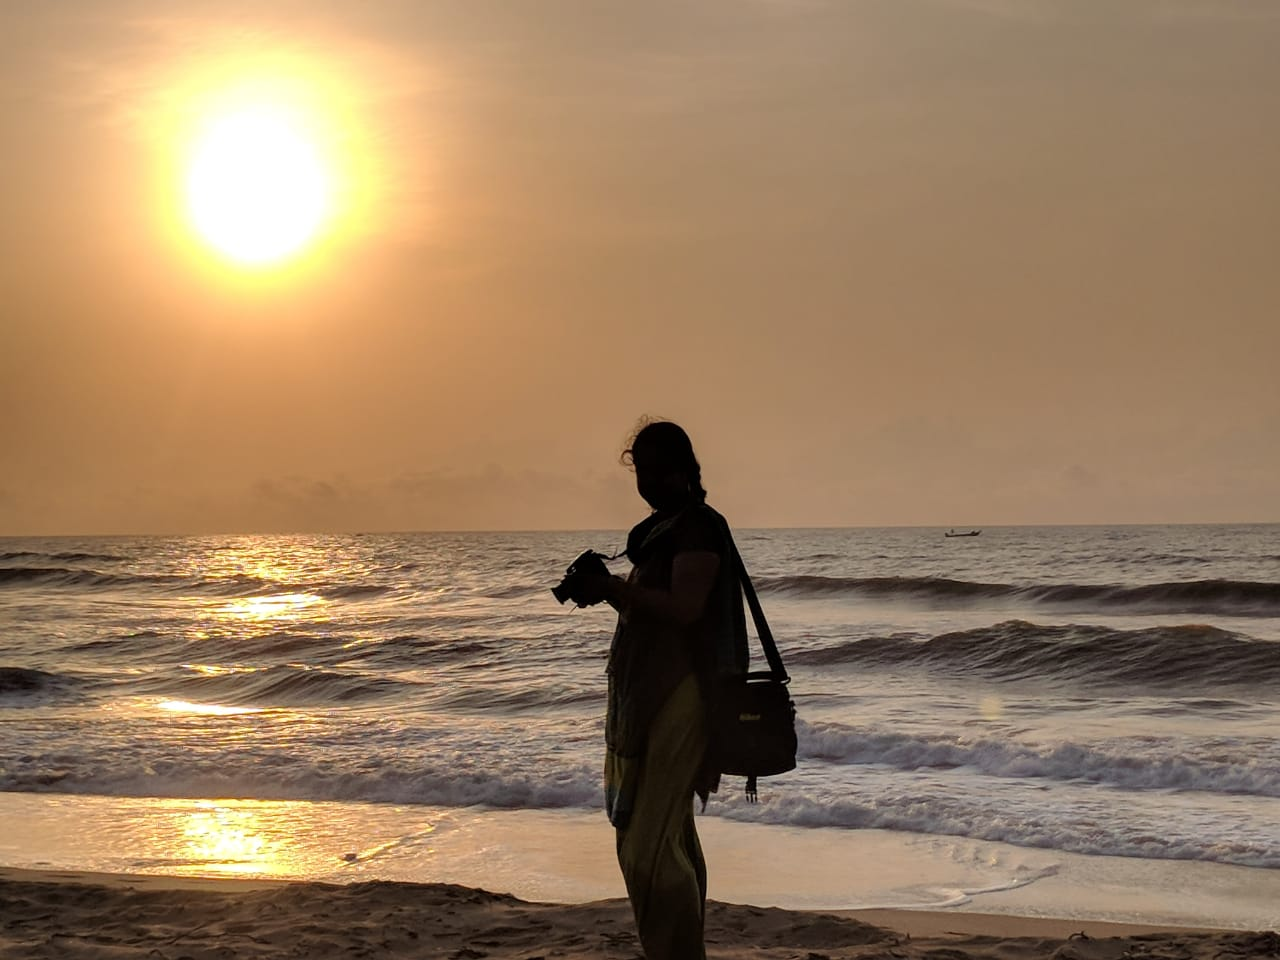 Solitude Silhoutte - Good Morning Madras!